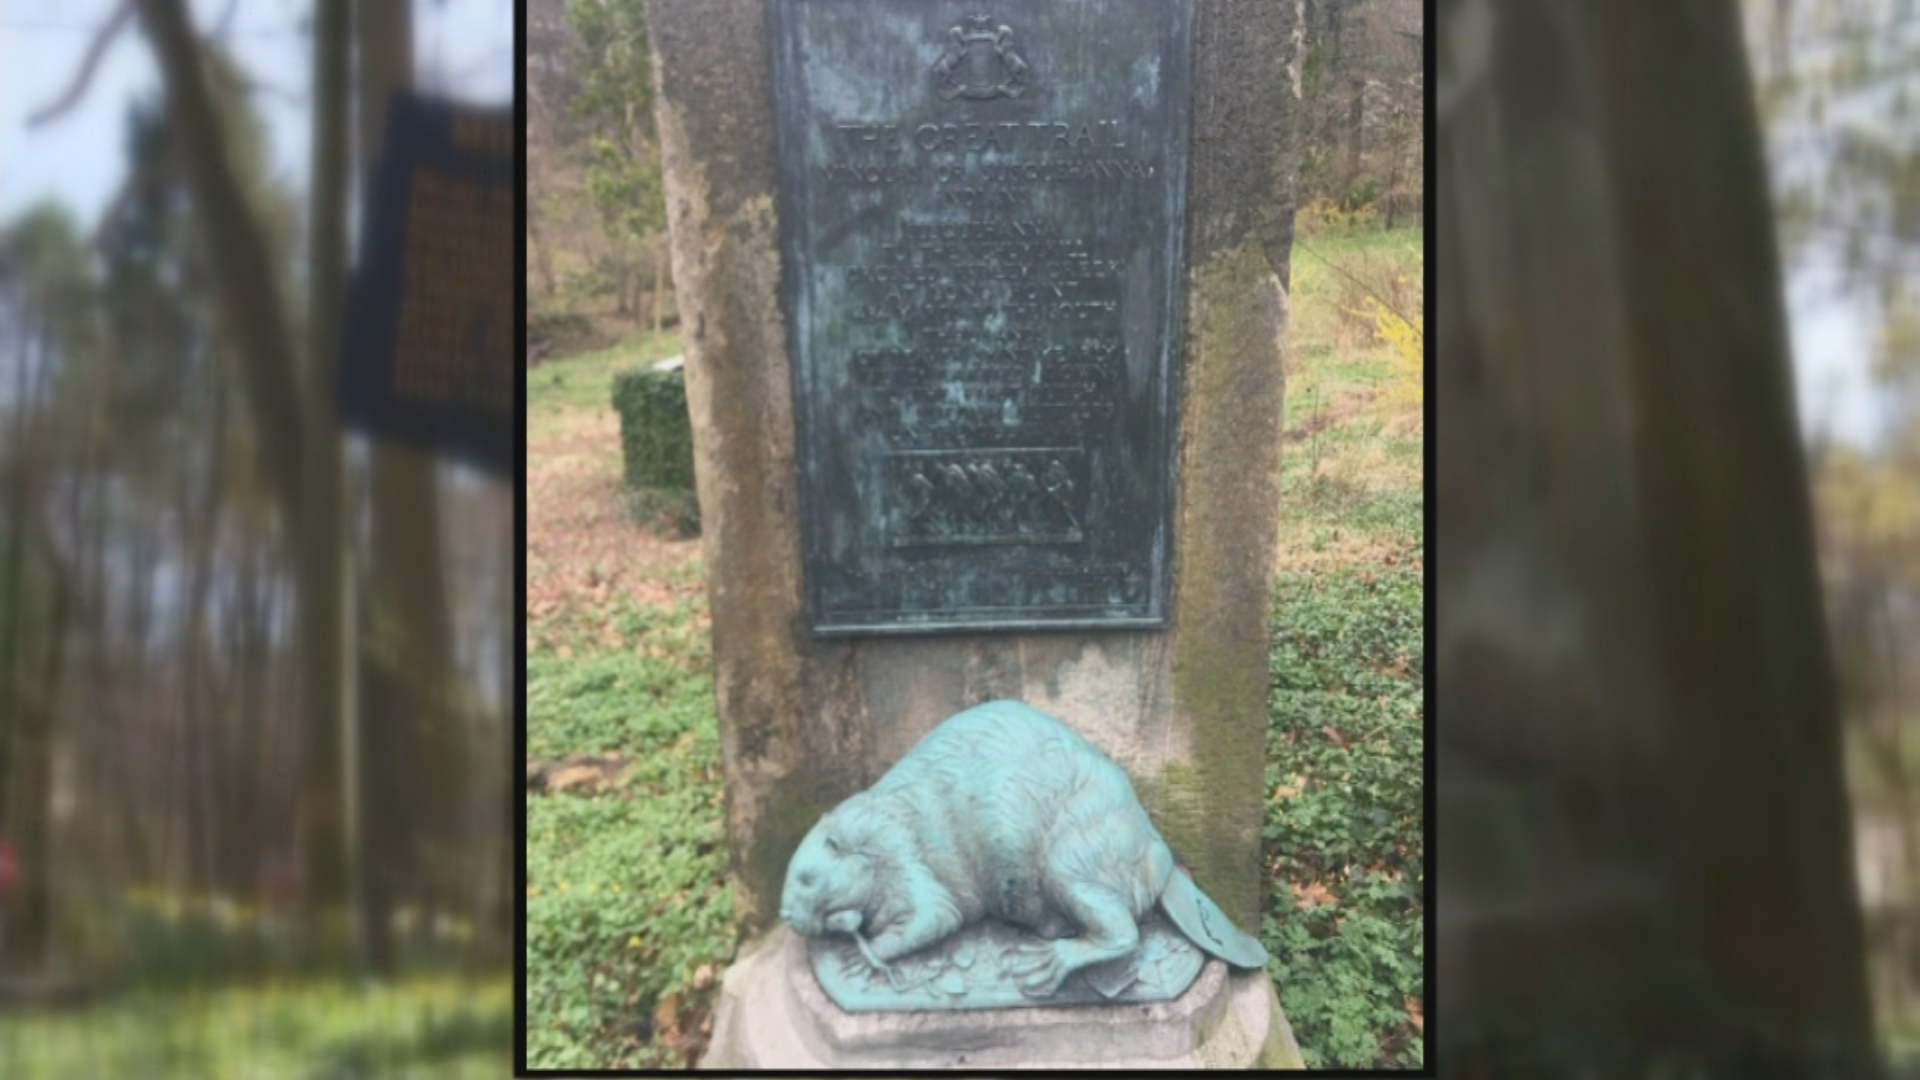 Pennsylvania State Police investigate theft of beaver statue, plaque in Delaware County – CBS Philly